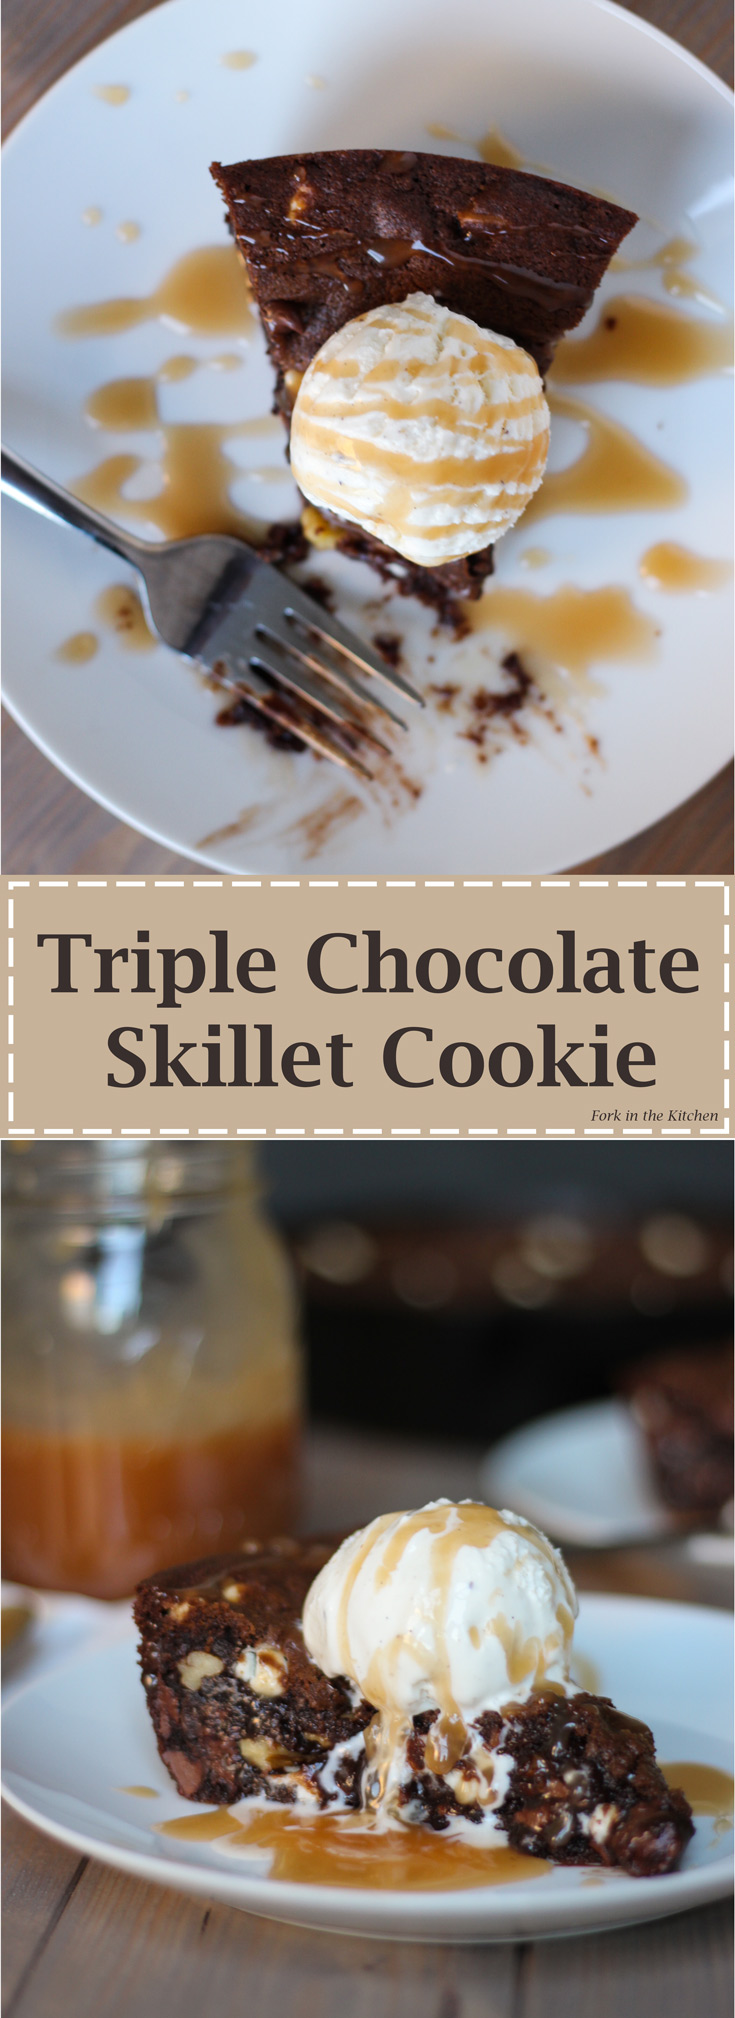 Triple Chocolate Skillet Cookie - a dangerously delicious dessert!